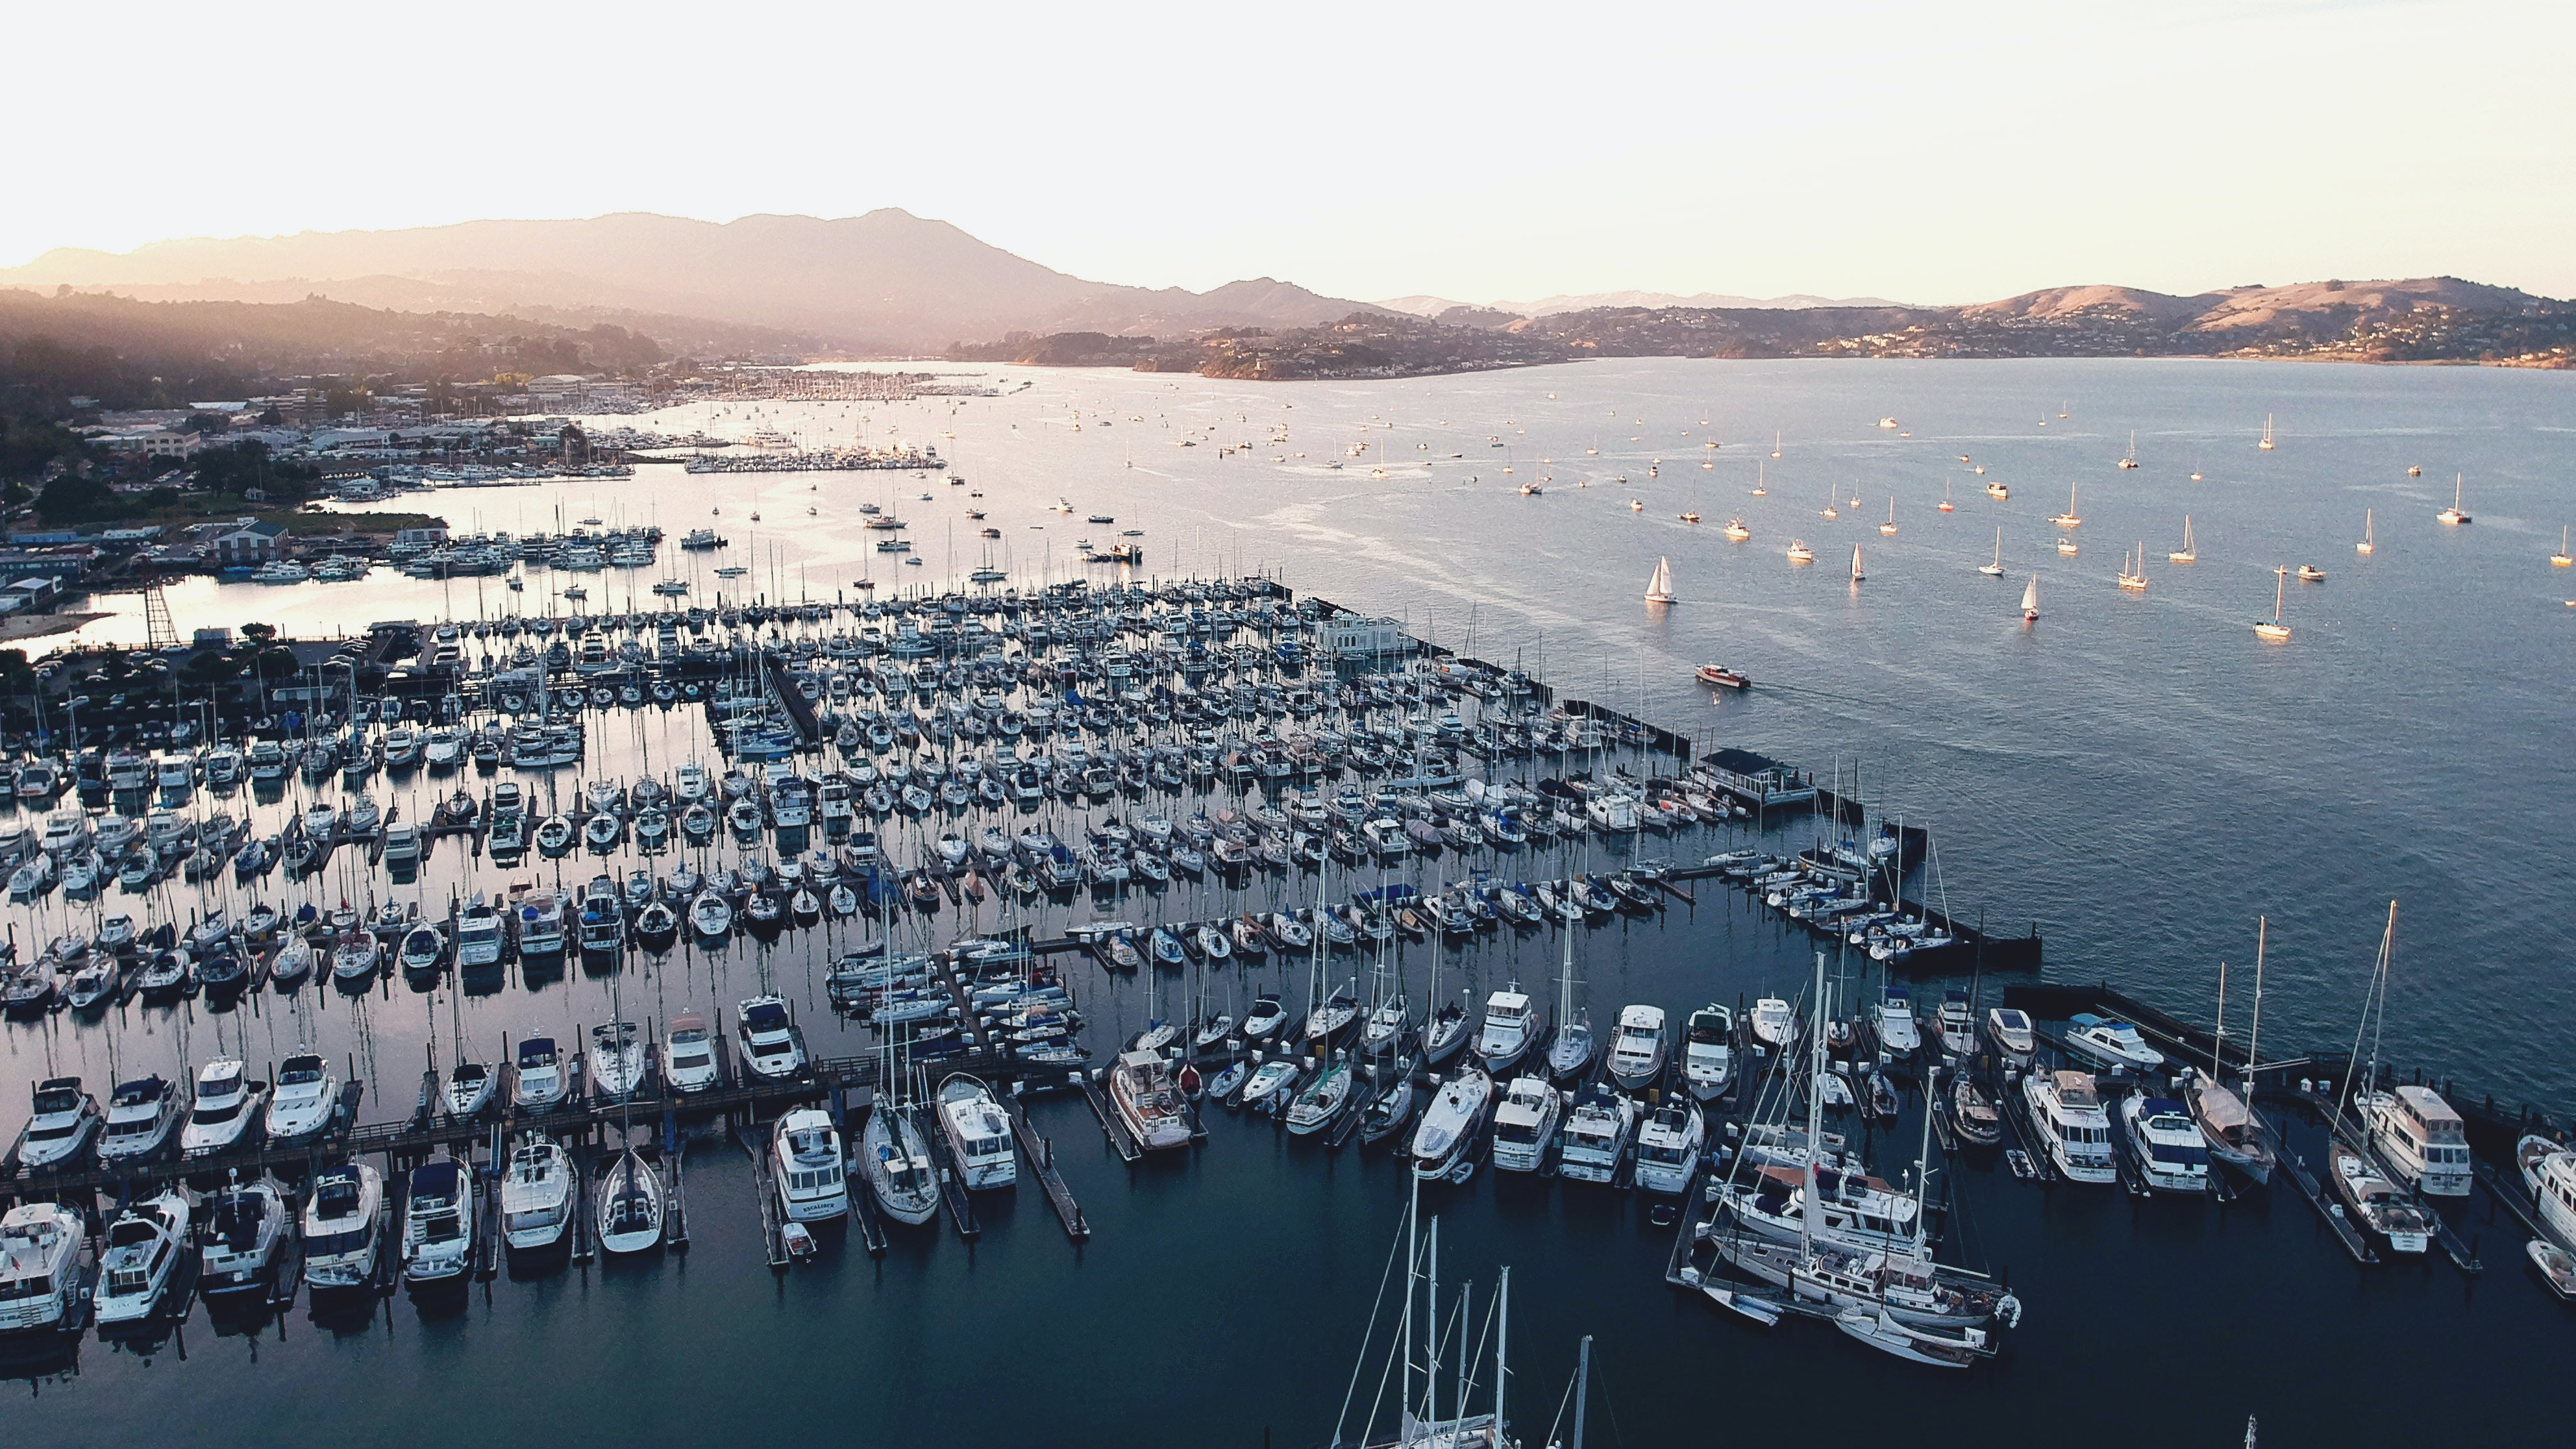 aerial photography of boats docked on water